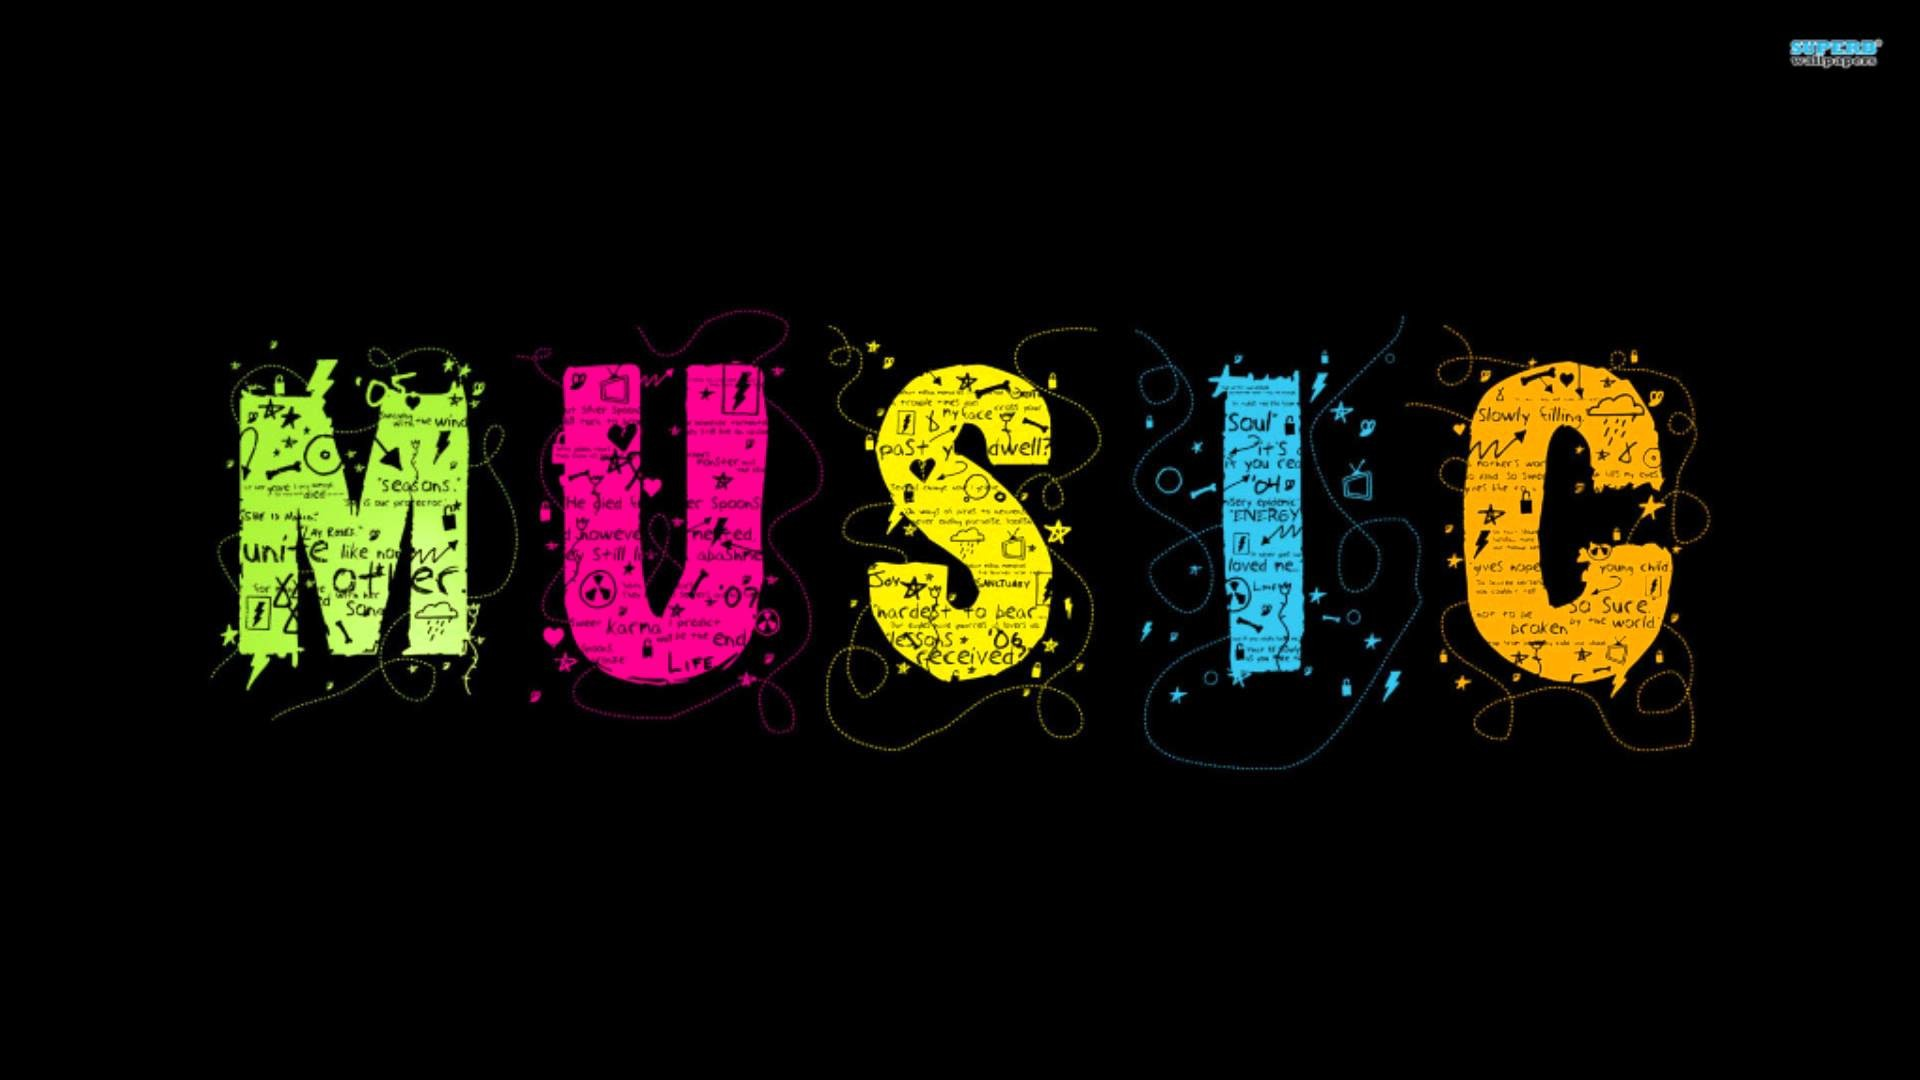 Download Free Music Wallpapers pictures in high definition or .